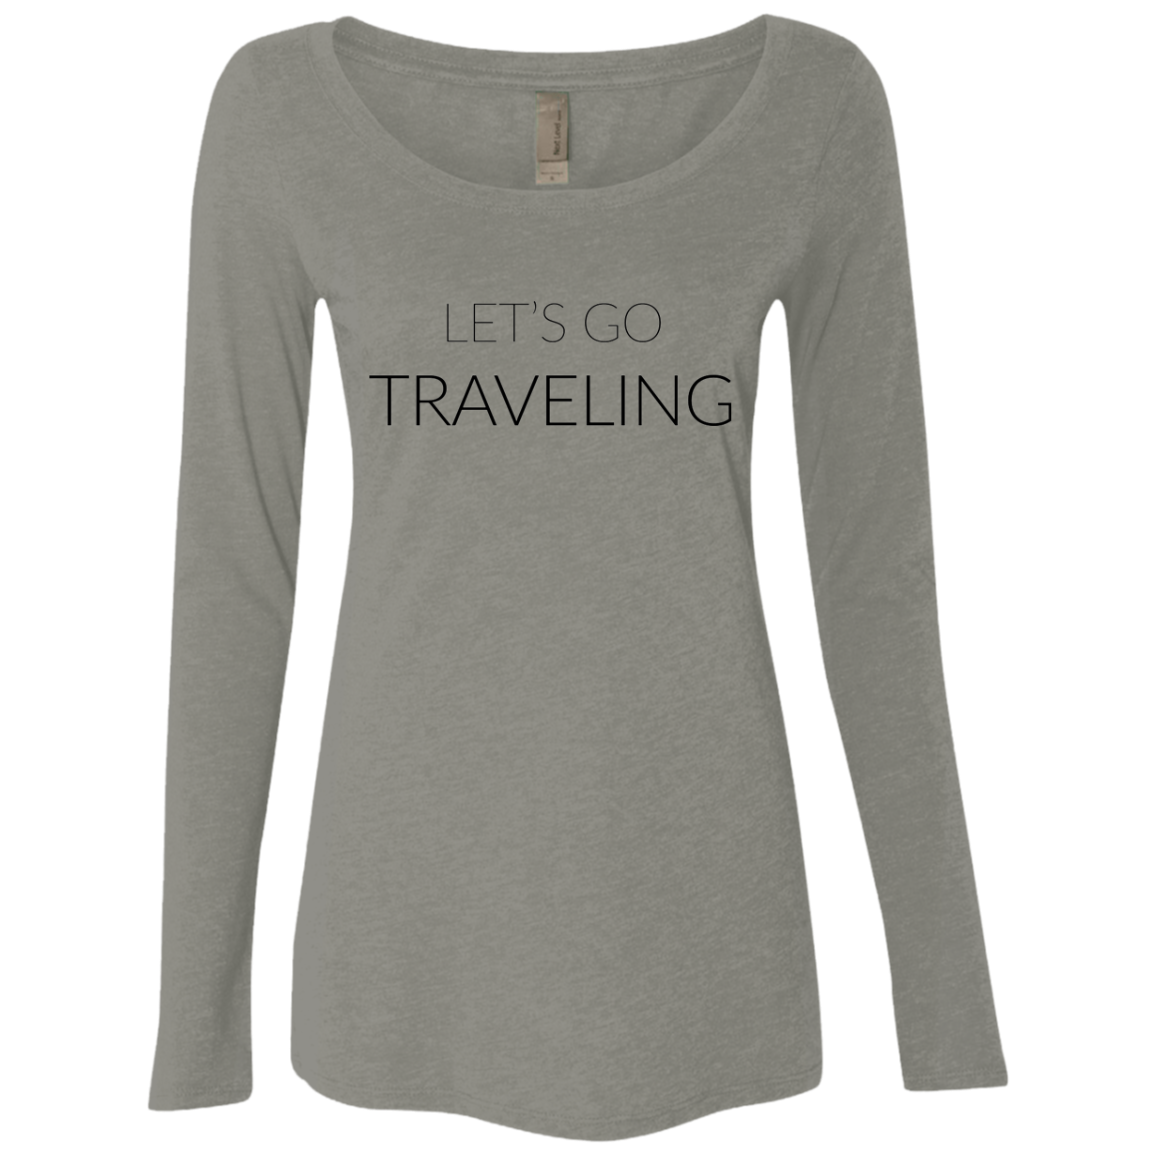 Let's Go Traveling Women's Long Sleeve Tee